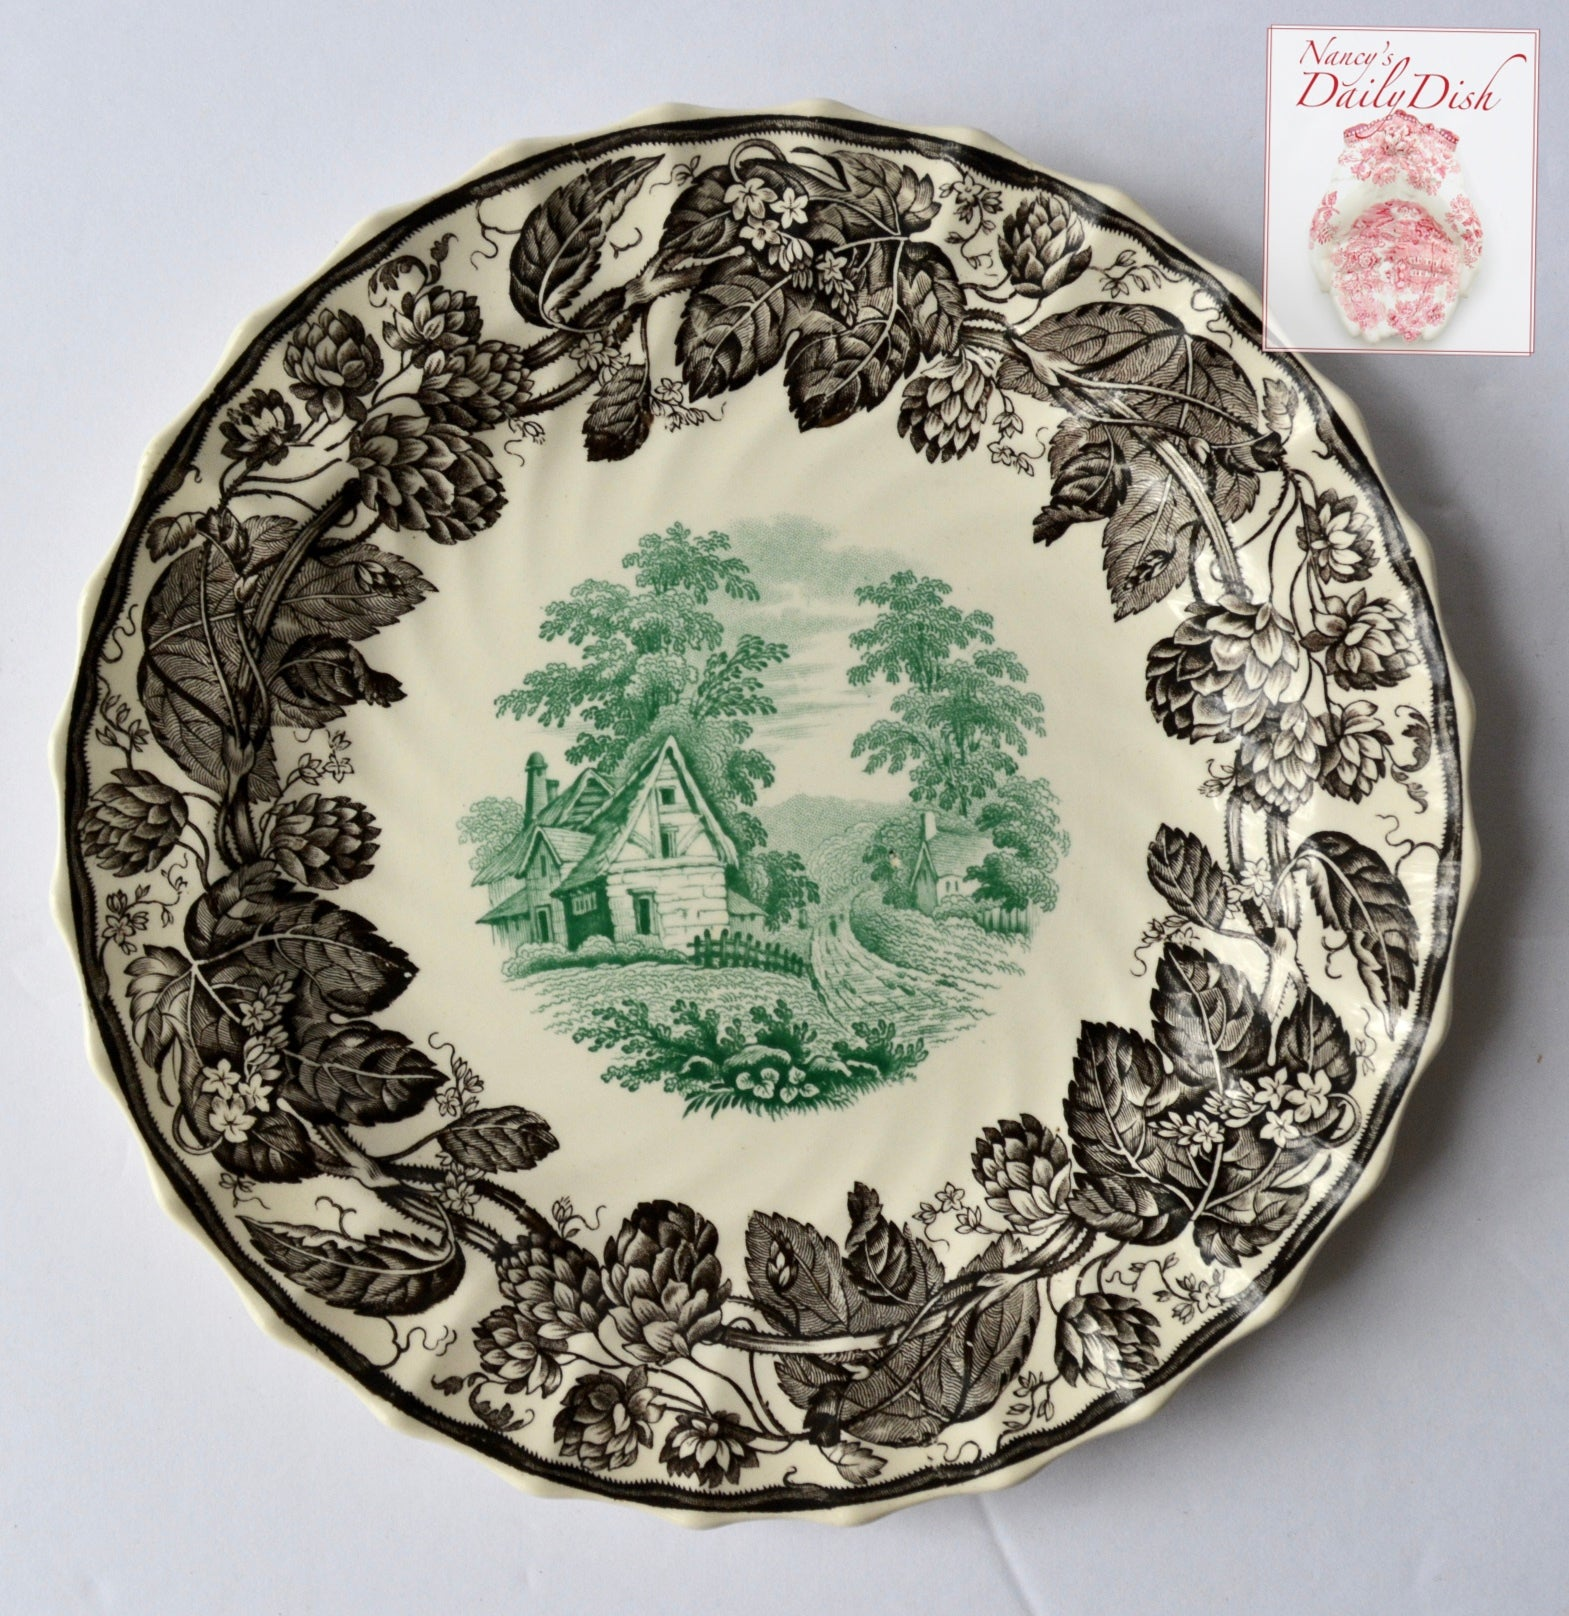 copeland spode rural scenes bi color brown green transferware plate tudor cottage hops border